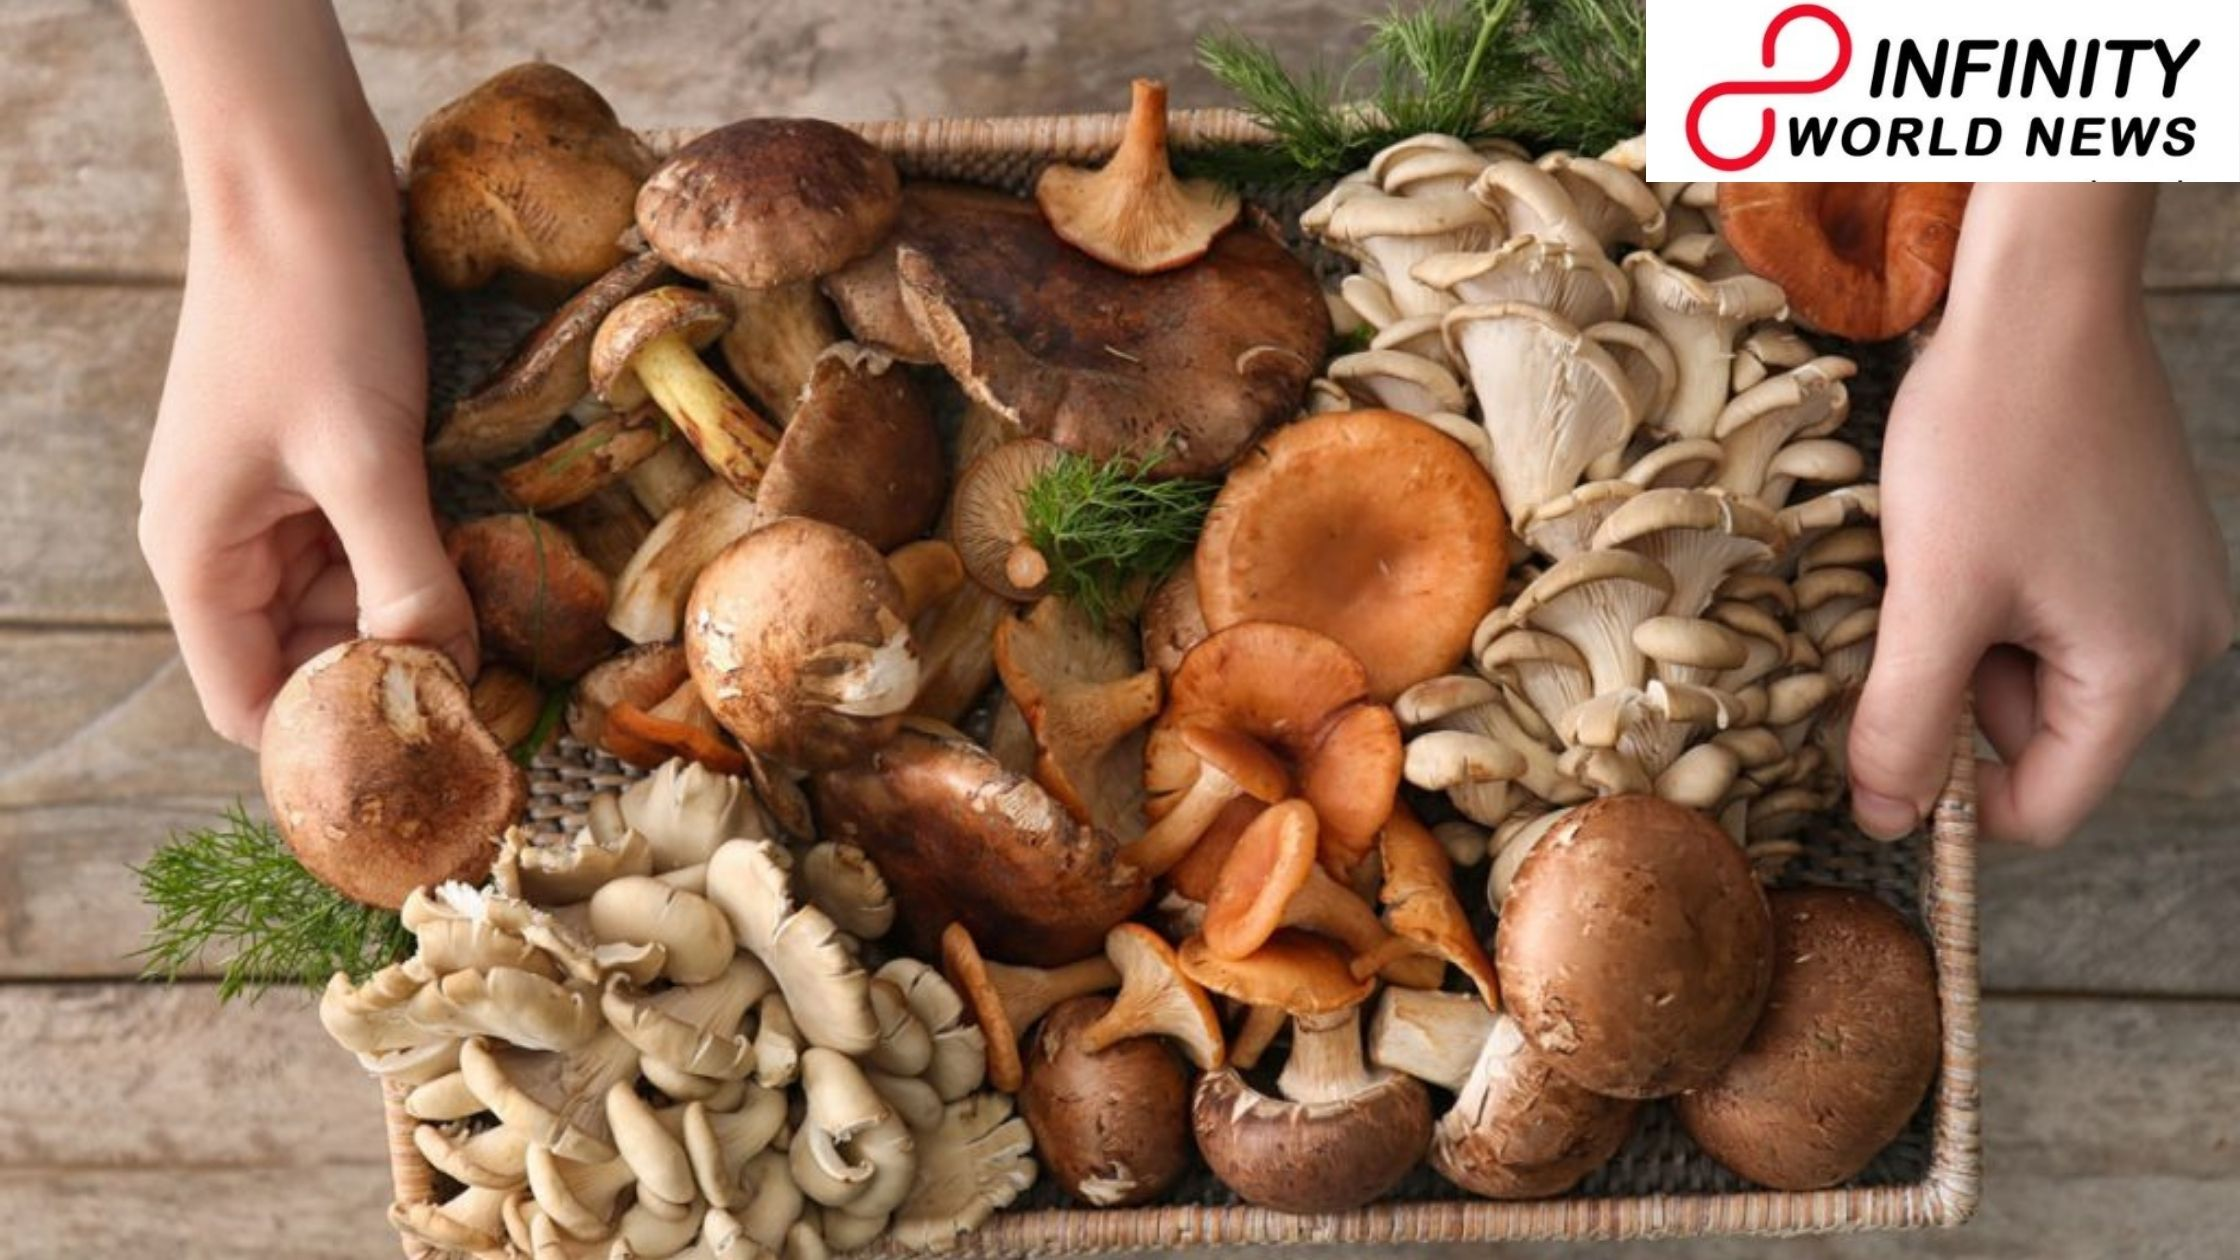 Eating more mushrooms can give essential nutrients to buyers' diets